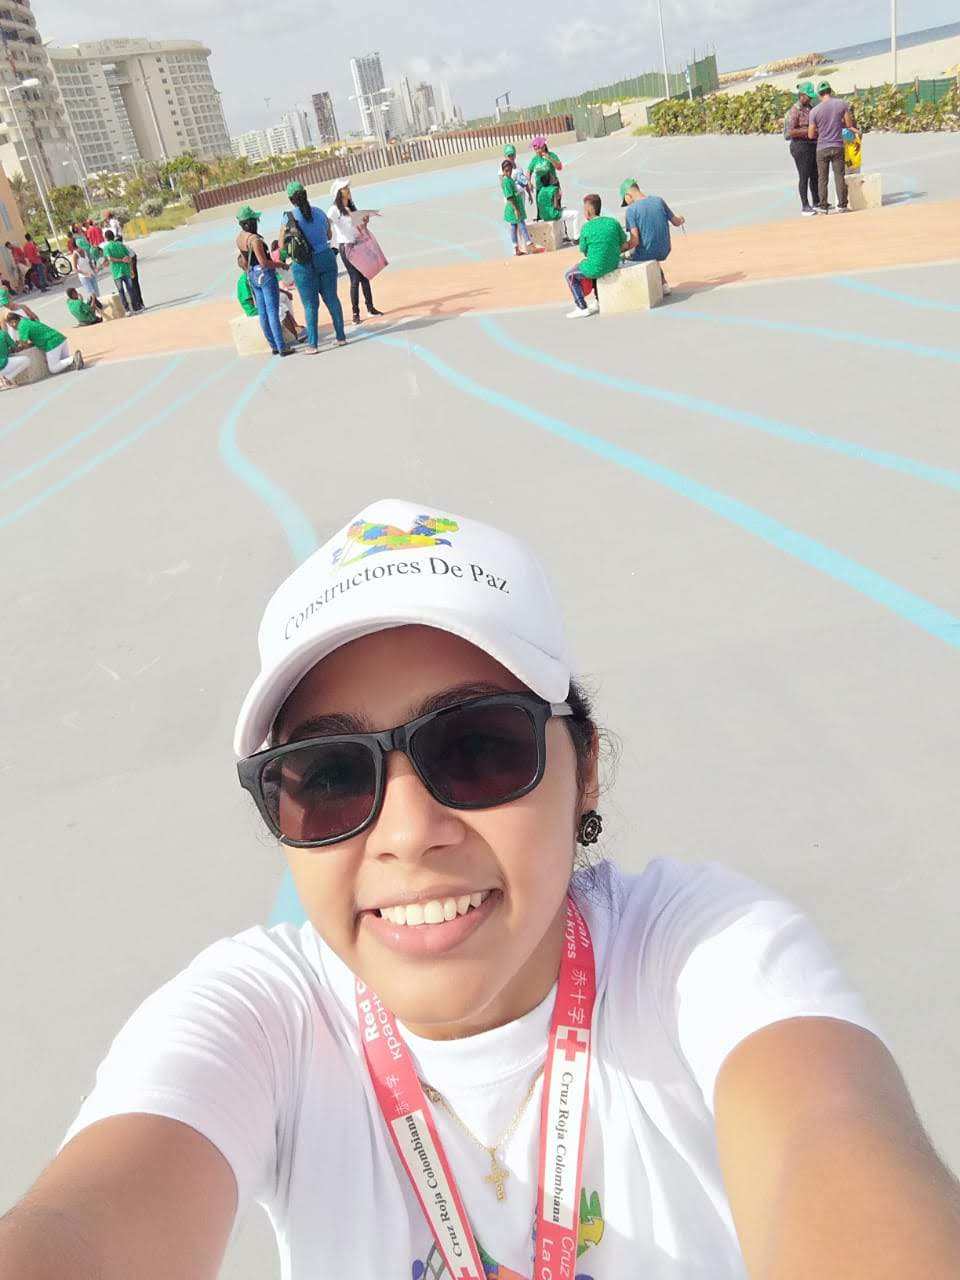 - The Coordinator for constructors for peace Claudia Rivera Cisnero have written a text about an activity her project had last saturday.